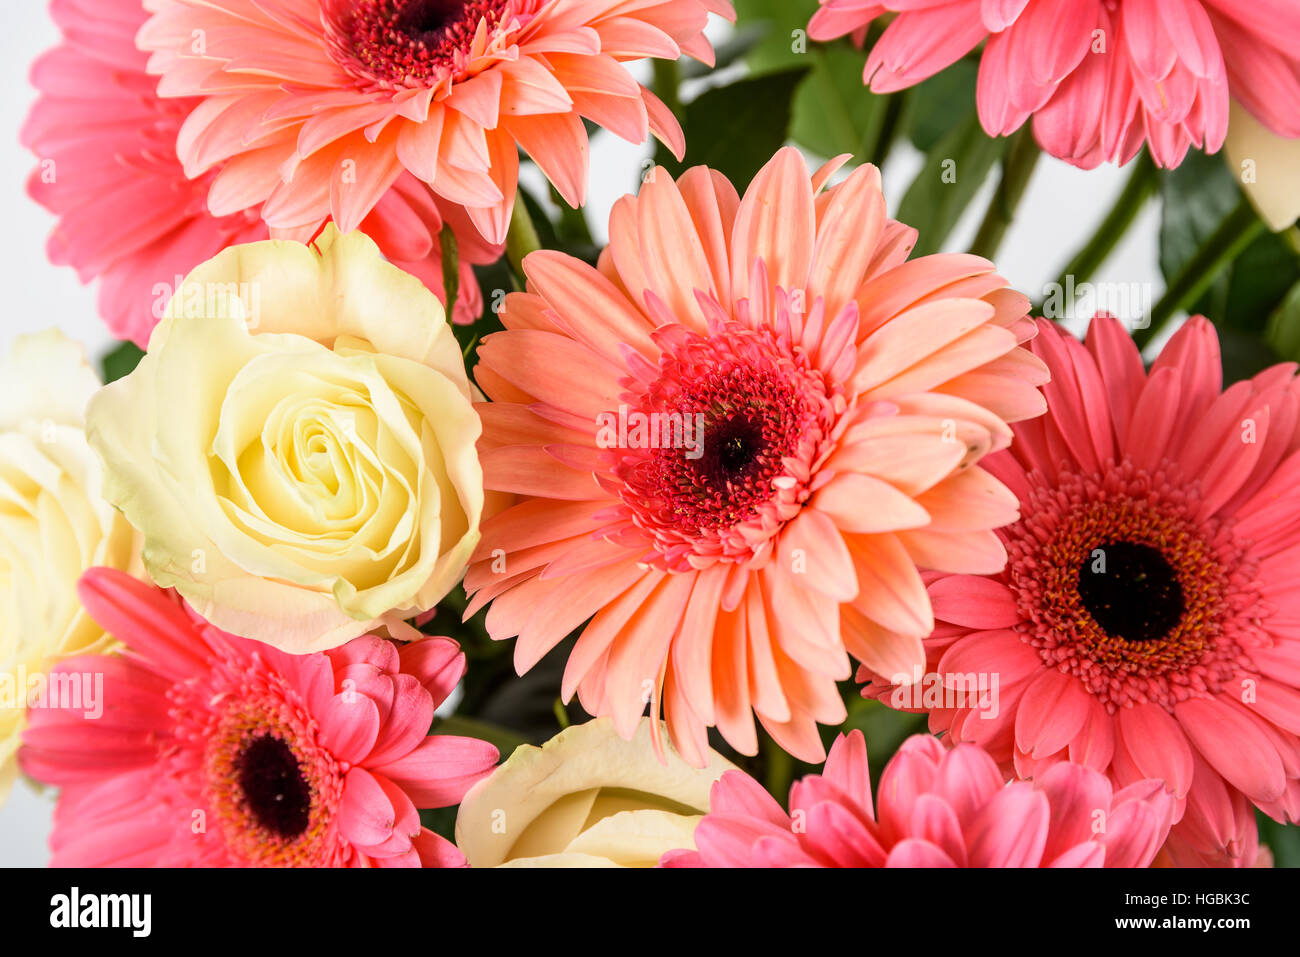 Pink gerbera daisy flowers and white roses bouquet stock photo pink gerbera daisy flowers and white roses bouquet izmirmasajfo